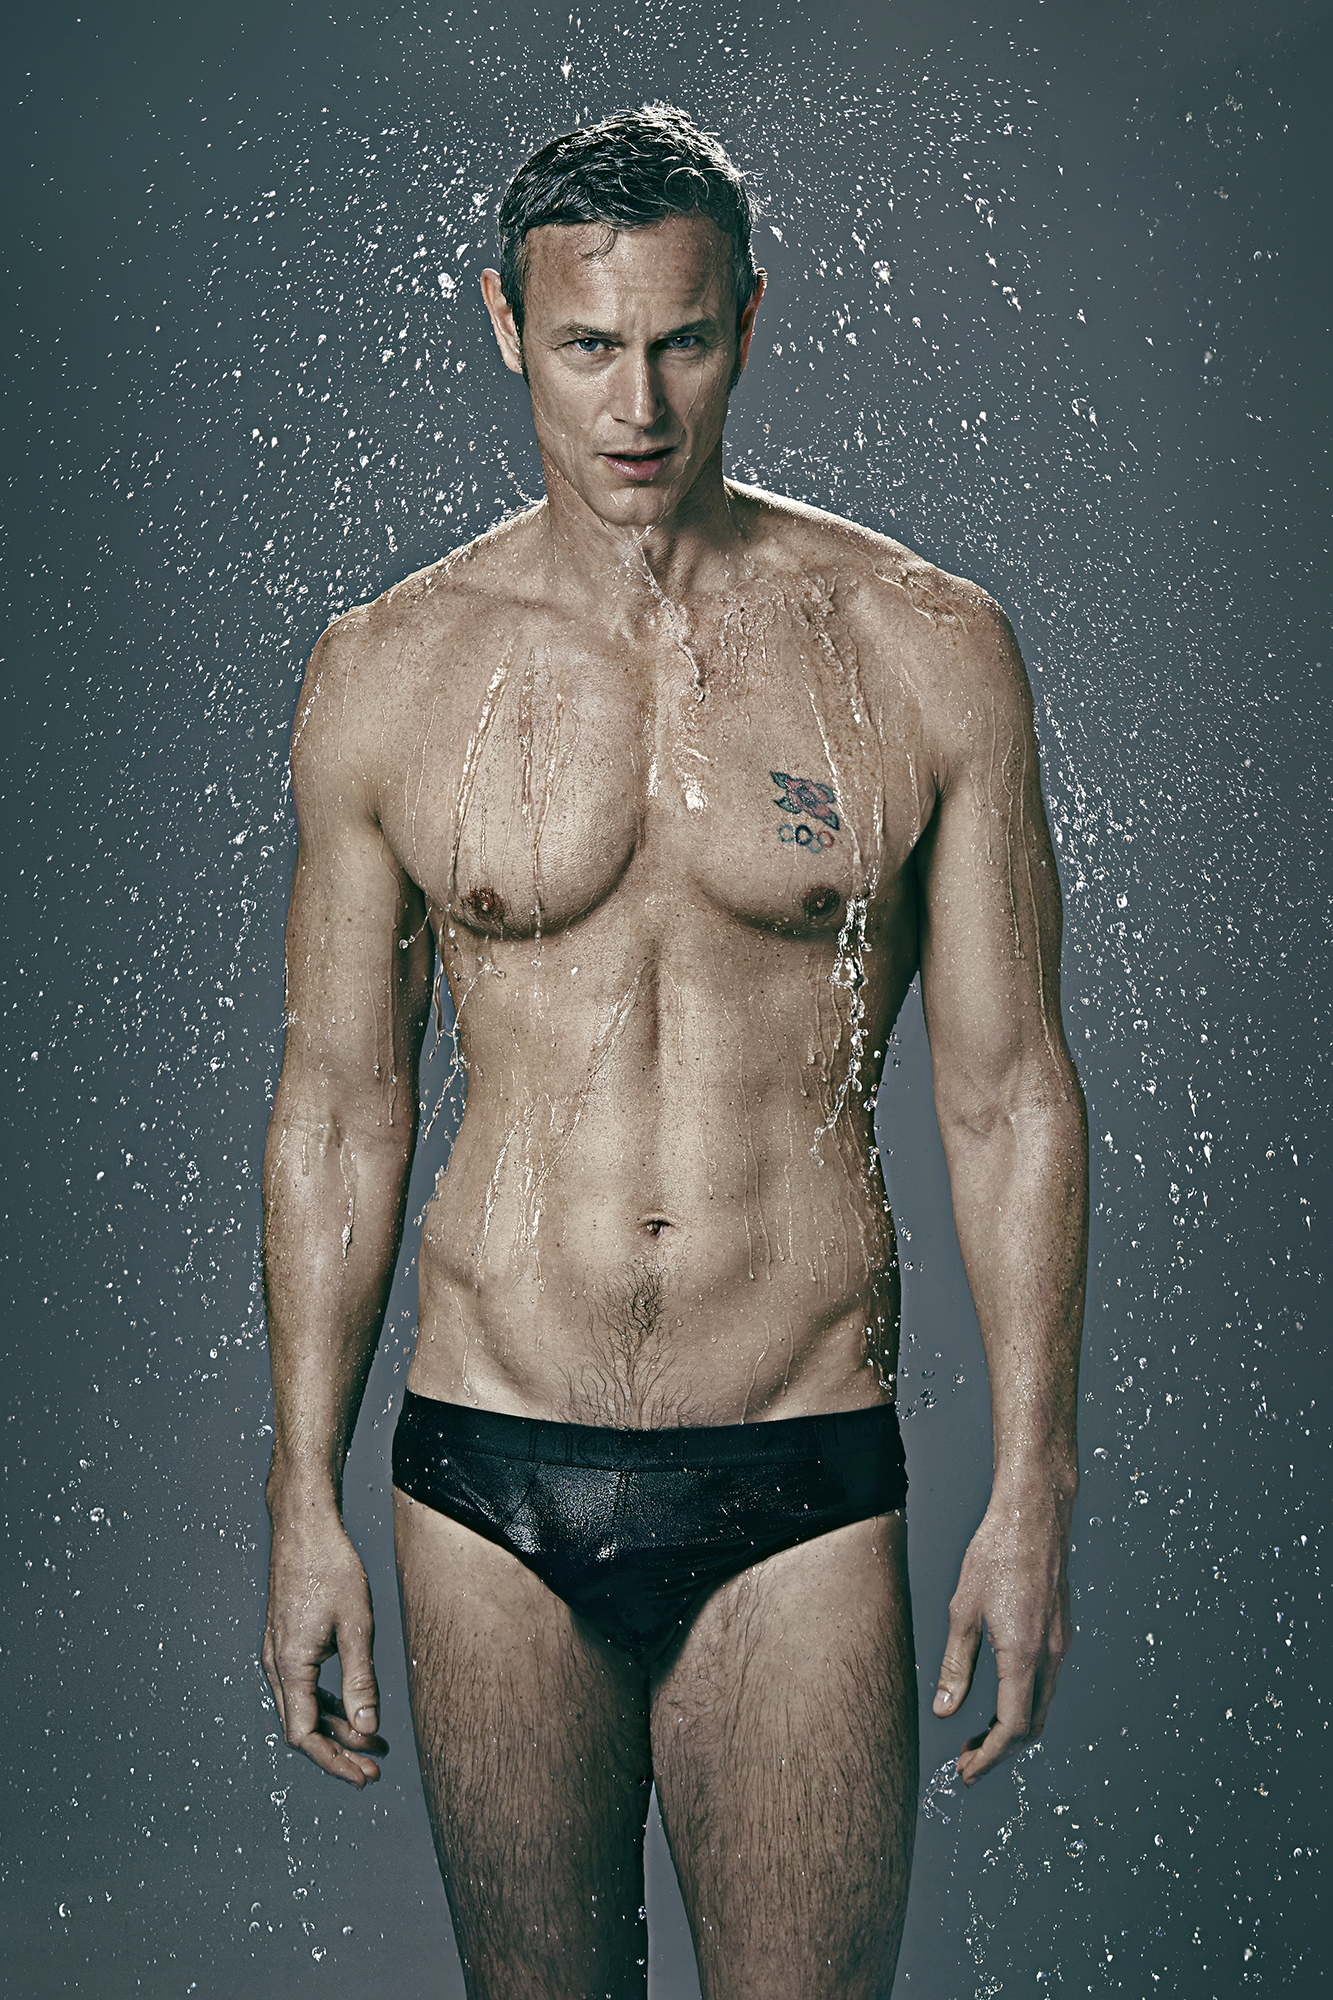 Mark Foster SwimmerLg.jpg